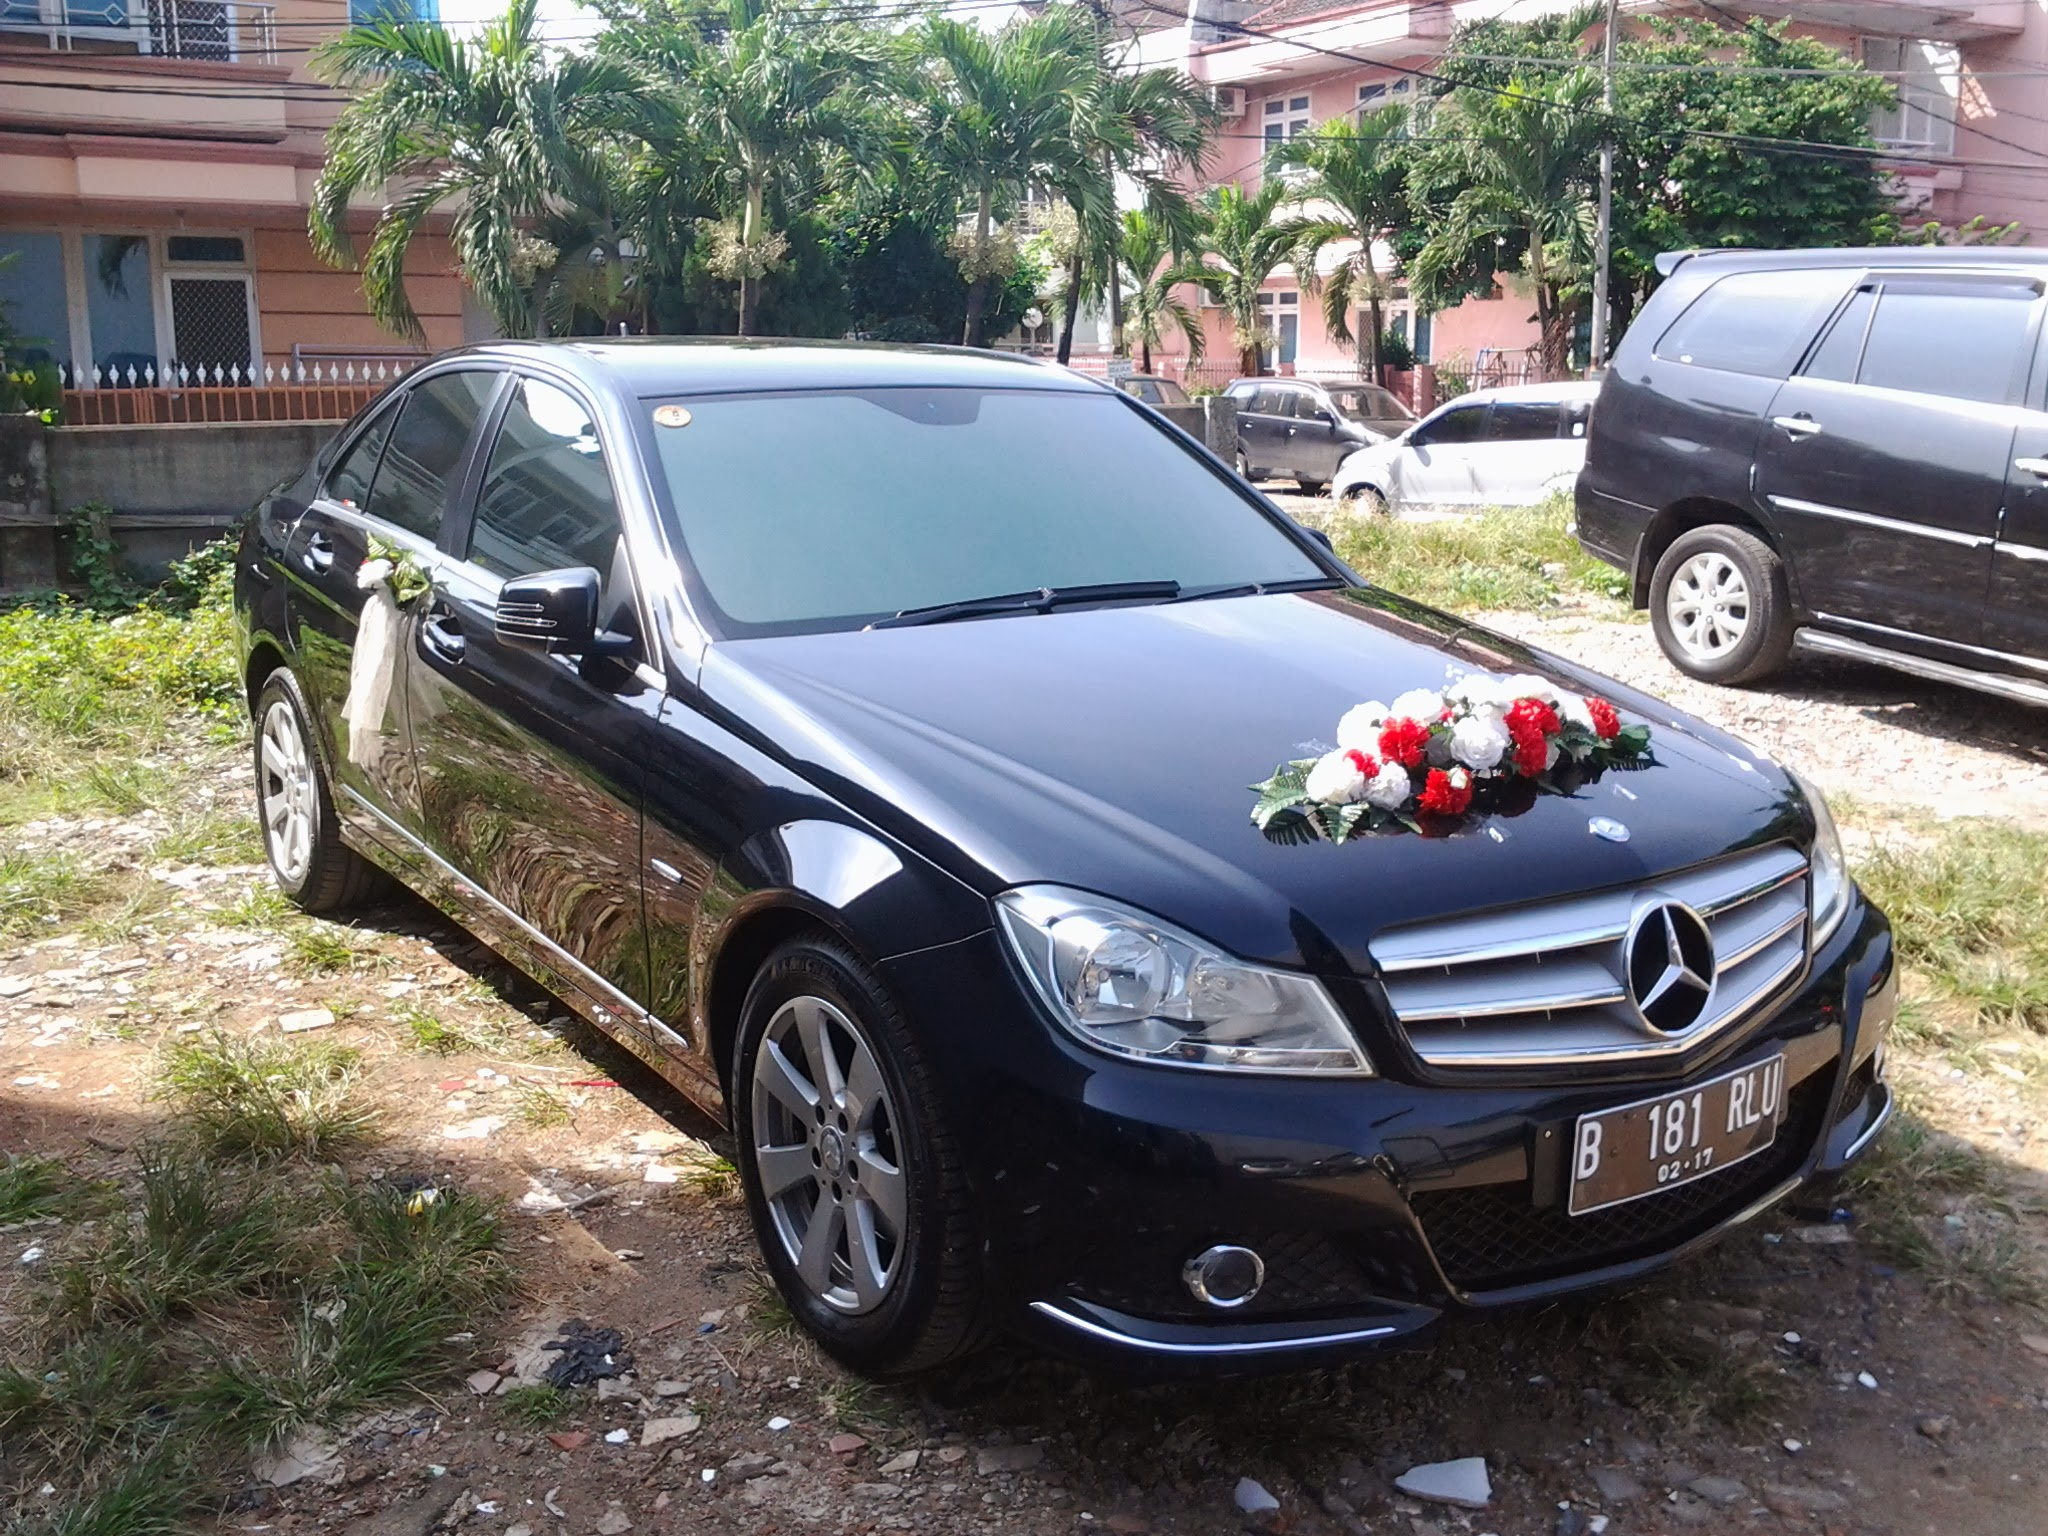 sewa mobil mercede benz c class, rental mercy c class, rental mobil mercedes benz c class, rent car mercedes benz c wedding car, rental mobil mewah, sewa mobil pengantin